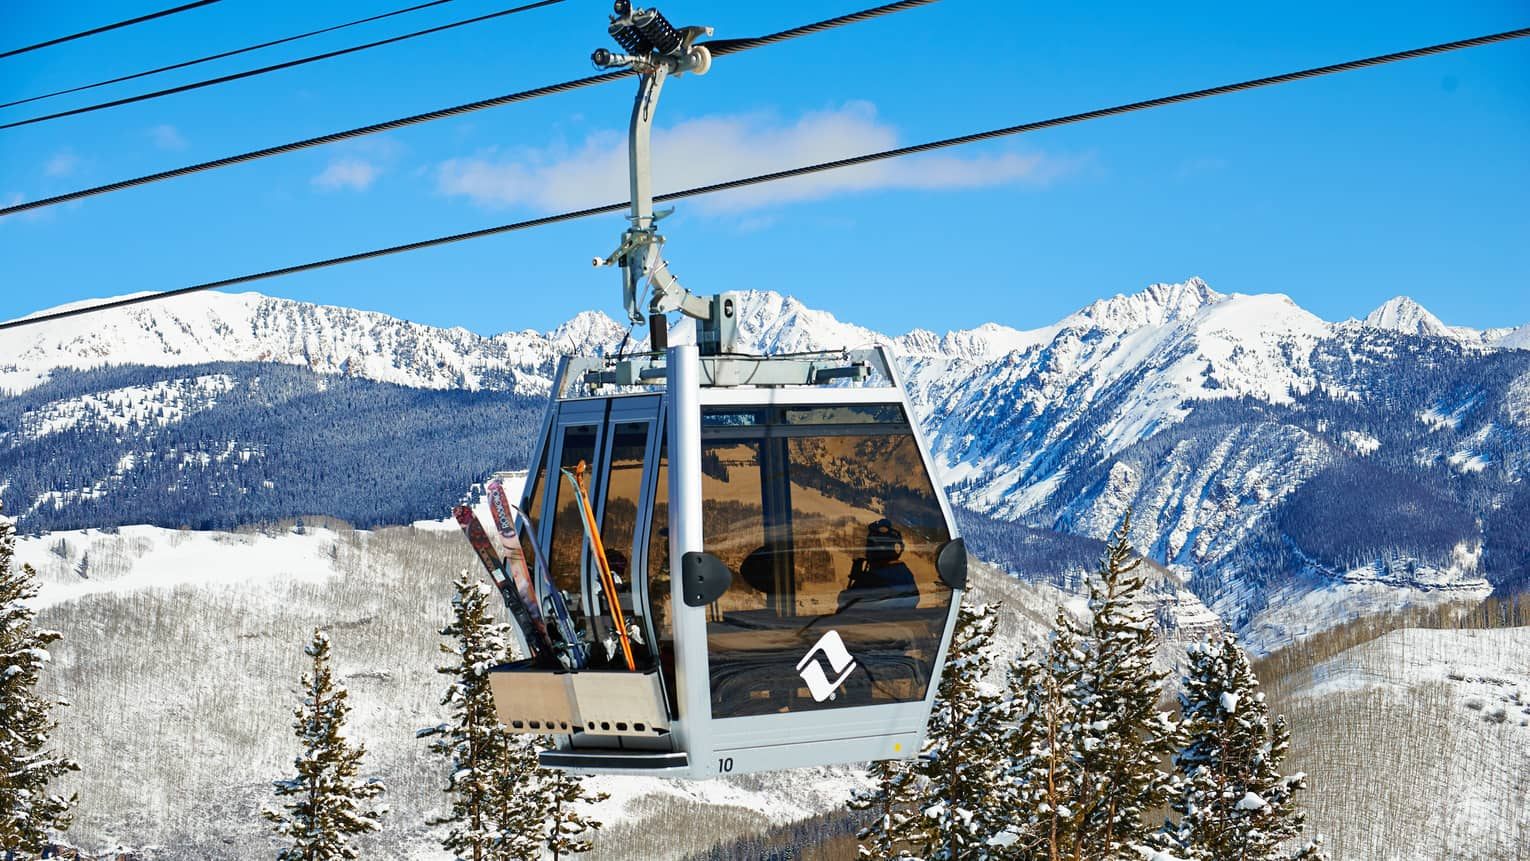 Ski lift heads uphill on snowy Vail, Colorado mountain